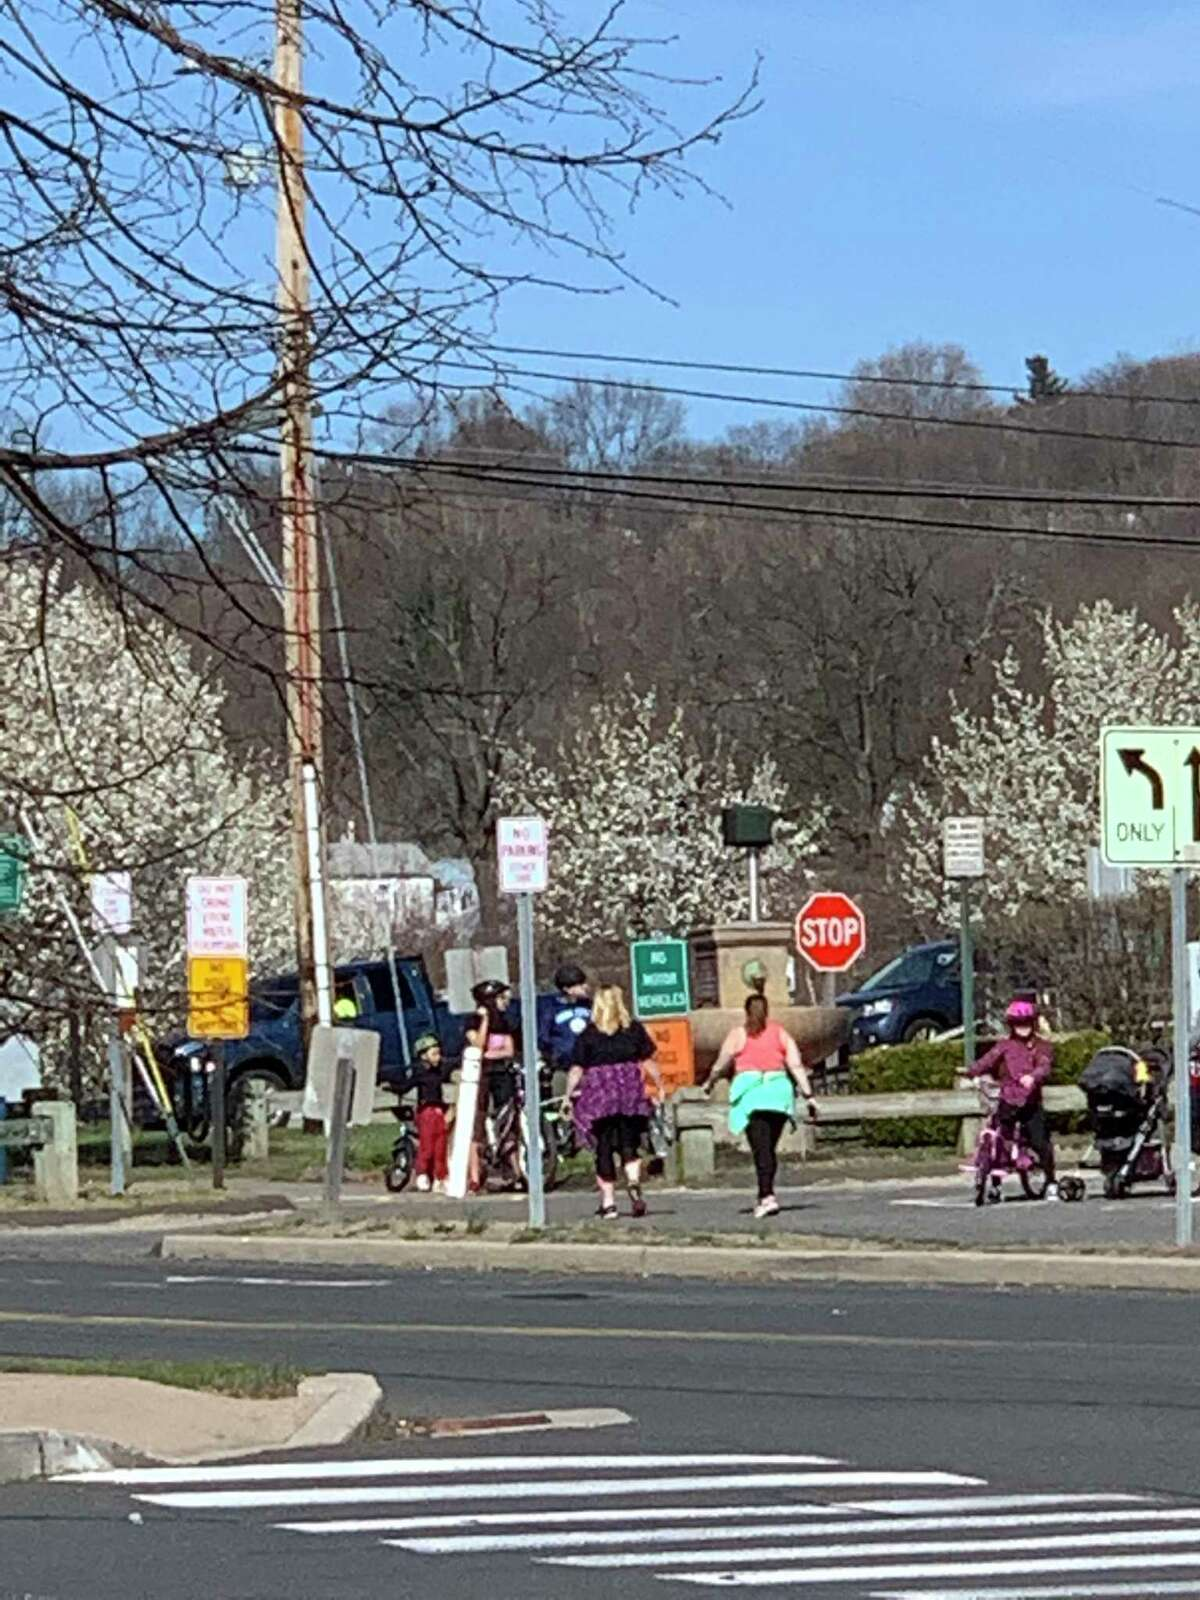 Walkers fill the Derby Greenway Monday afternoon just hours after Ansonia Mayor David Cassetti closed the Ansonia section indefinitely because people were congregating and not following the six-foot distance rule.